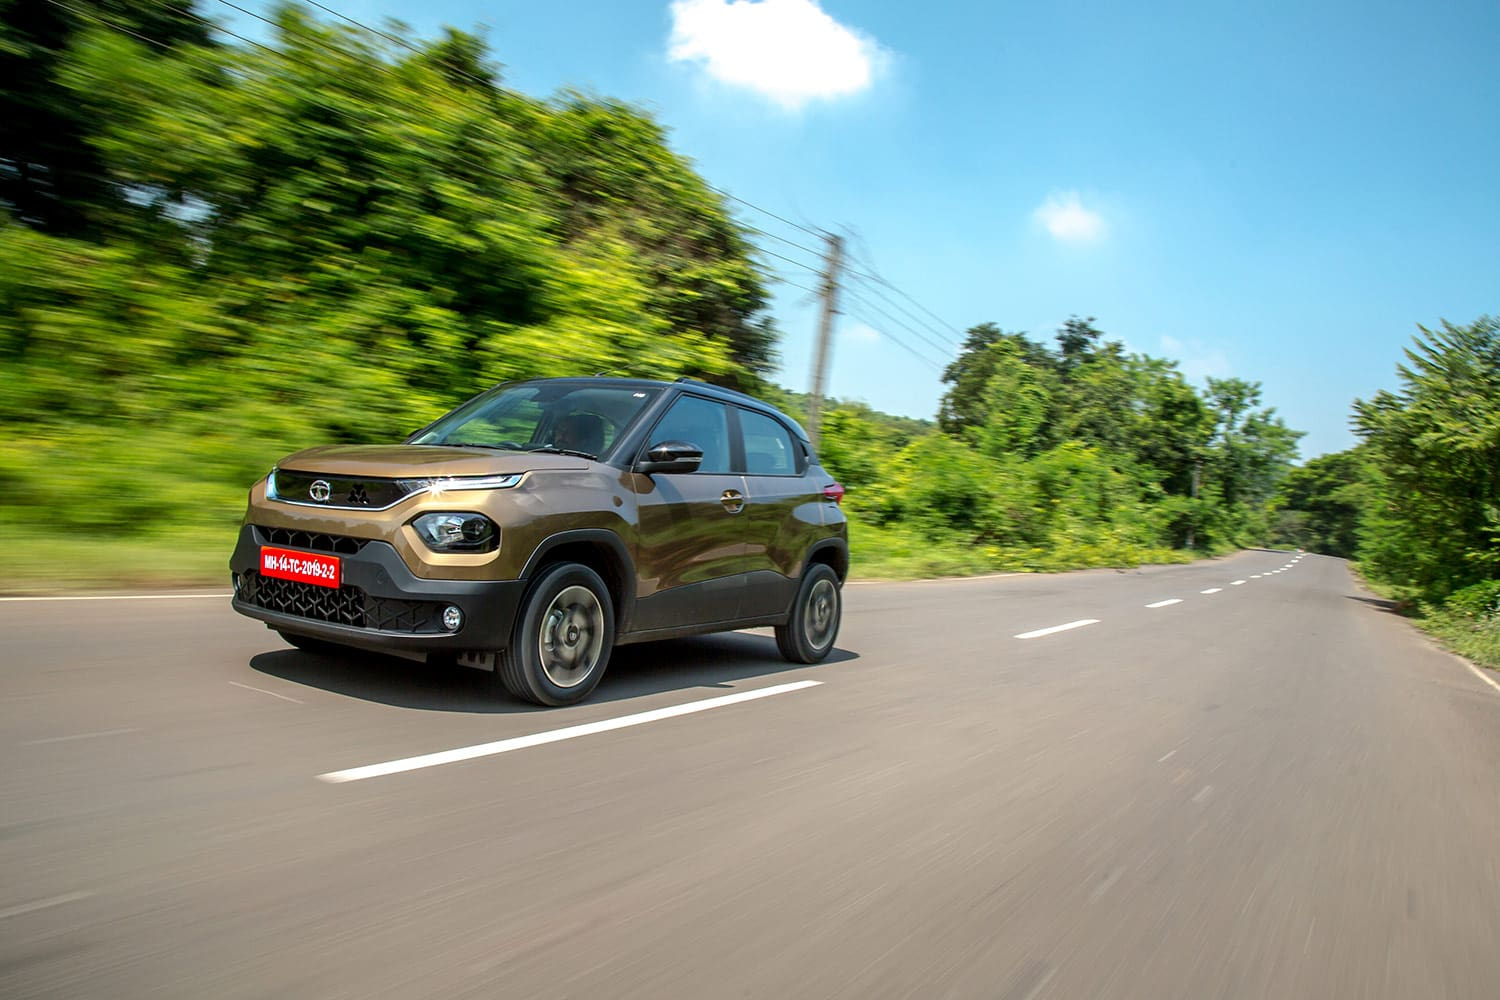 Tata Punch: First Drive Review